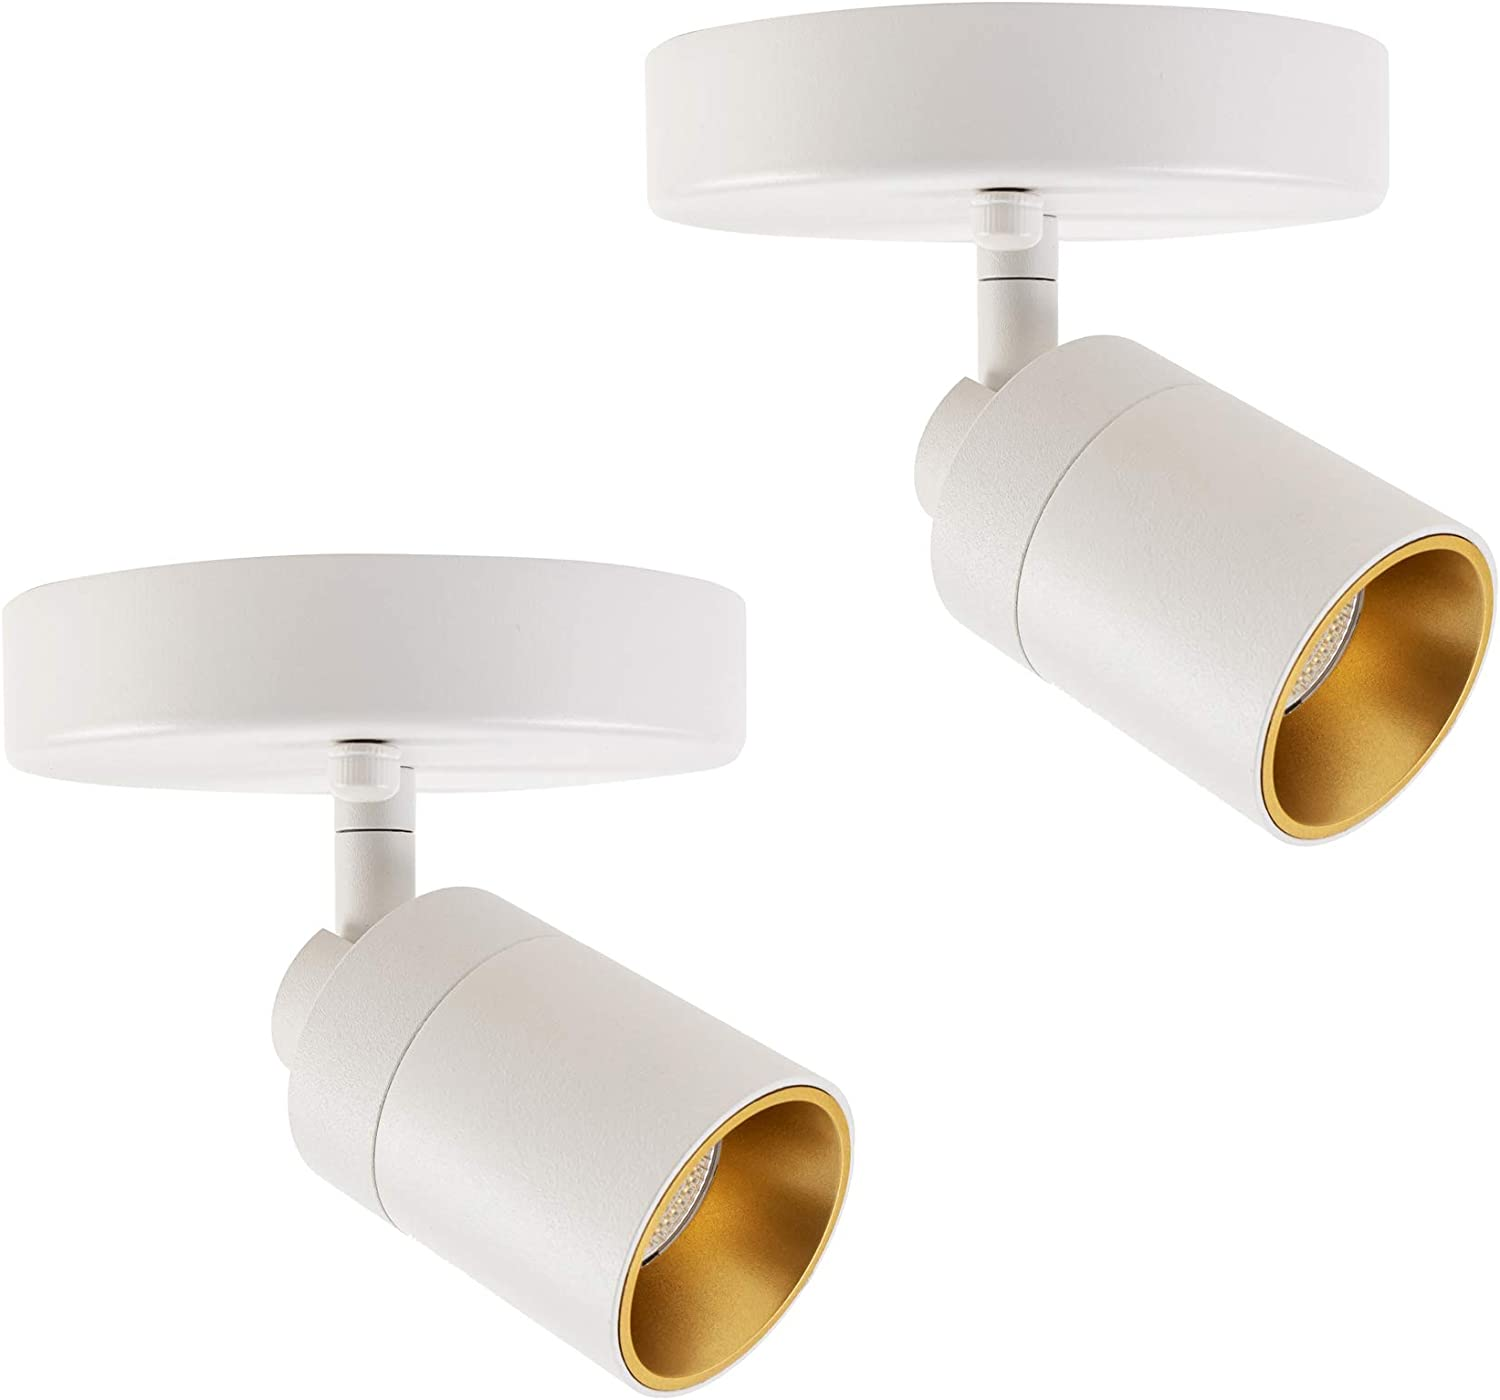 Vidalite LED Monopoint Sconce Adjustable Flush Mount Spot Light with Rotating Head for Living Room Dining and Office, 2-Pack, White, 2